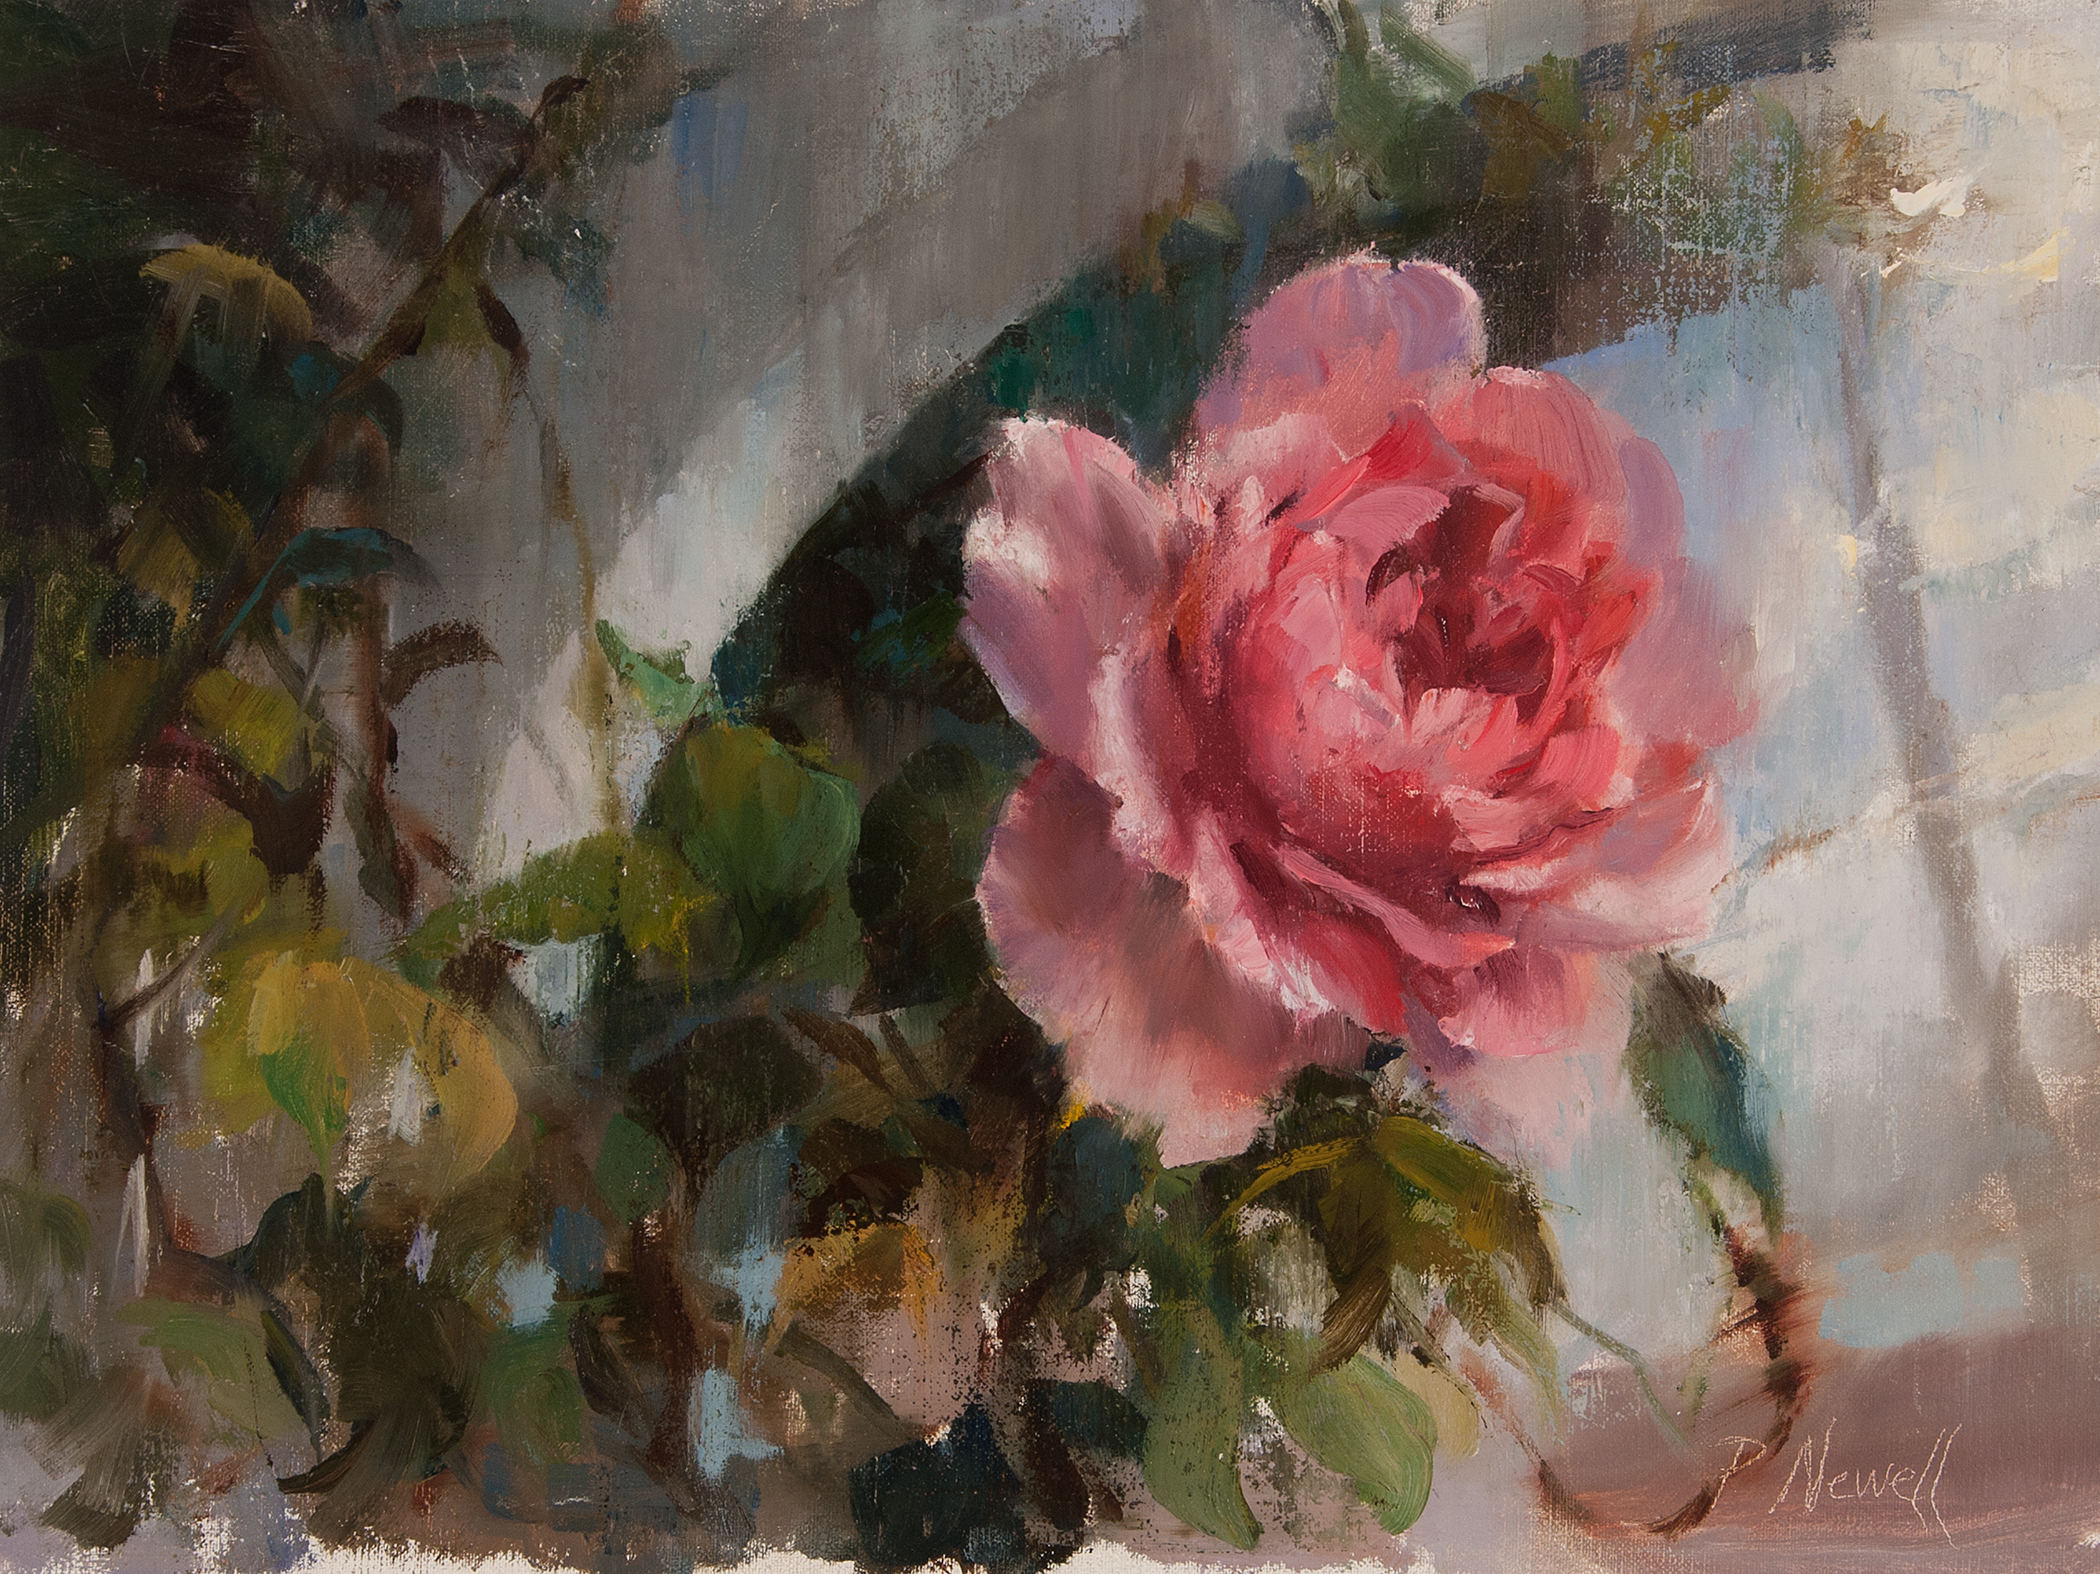 Arbor Rose by Pam Newell